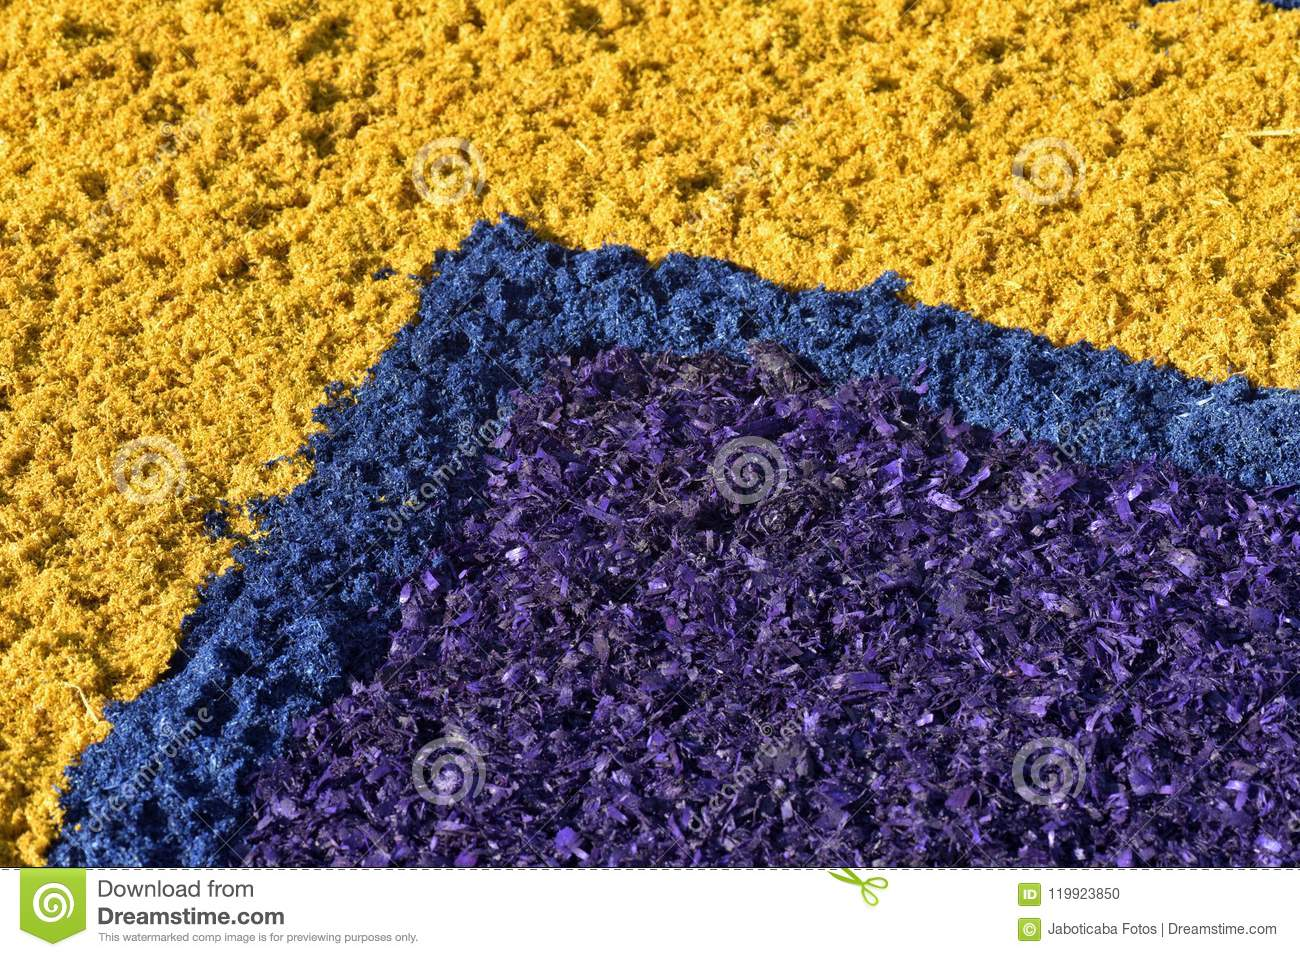 Background Of Colored Wood Shavings Stock Photo - Image of